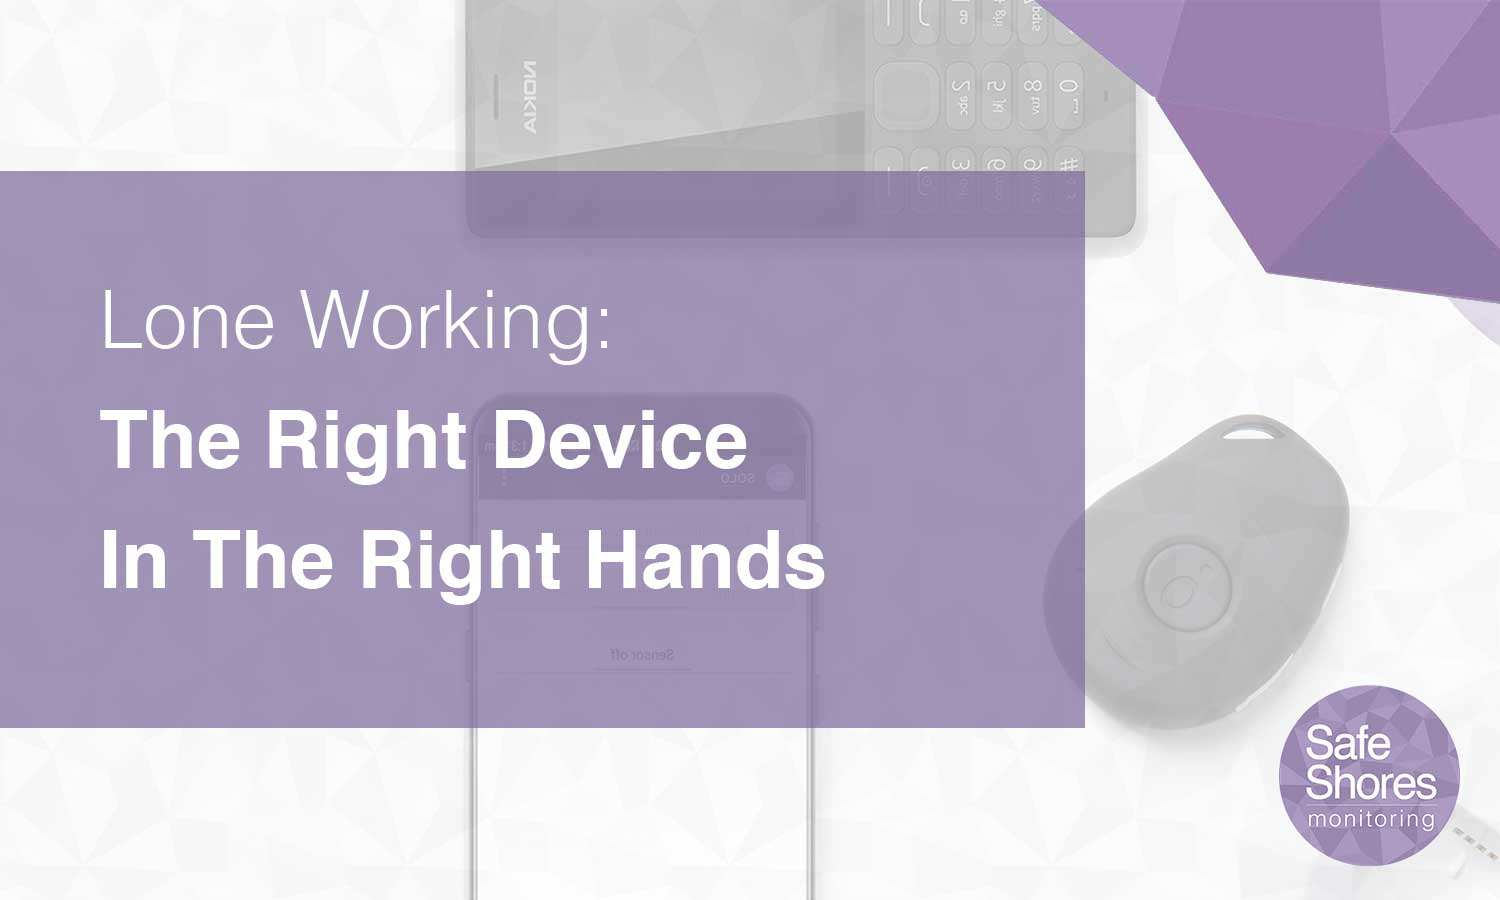 Lone Working: The Right Device In The Right Hands